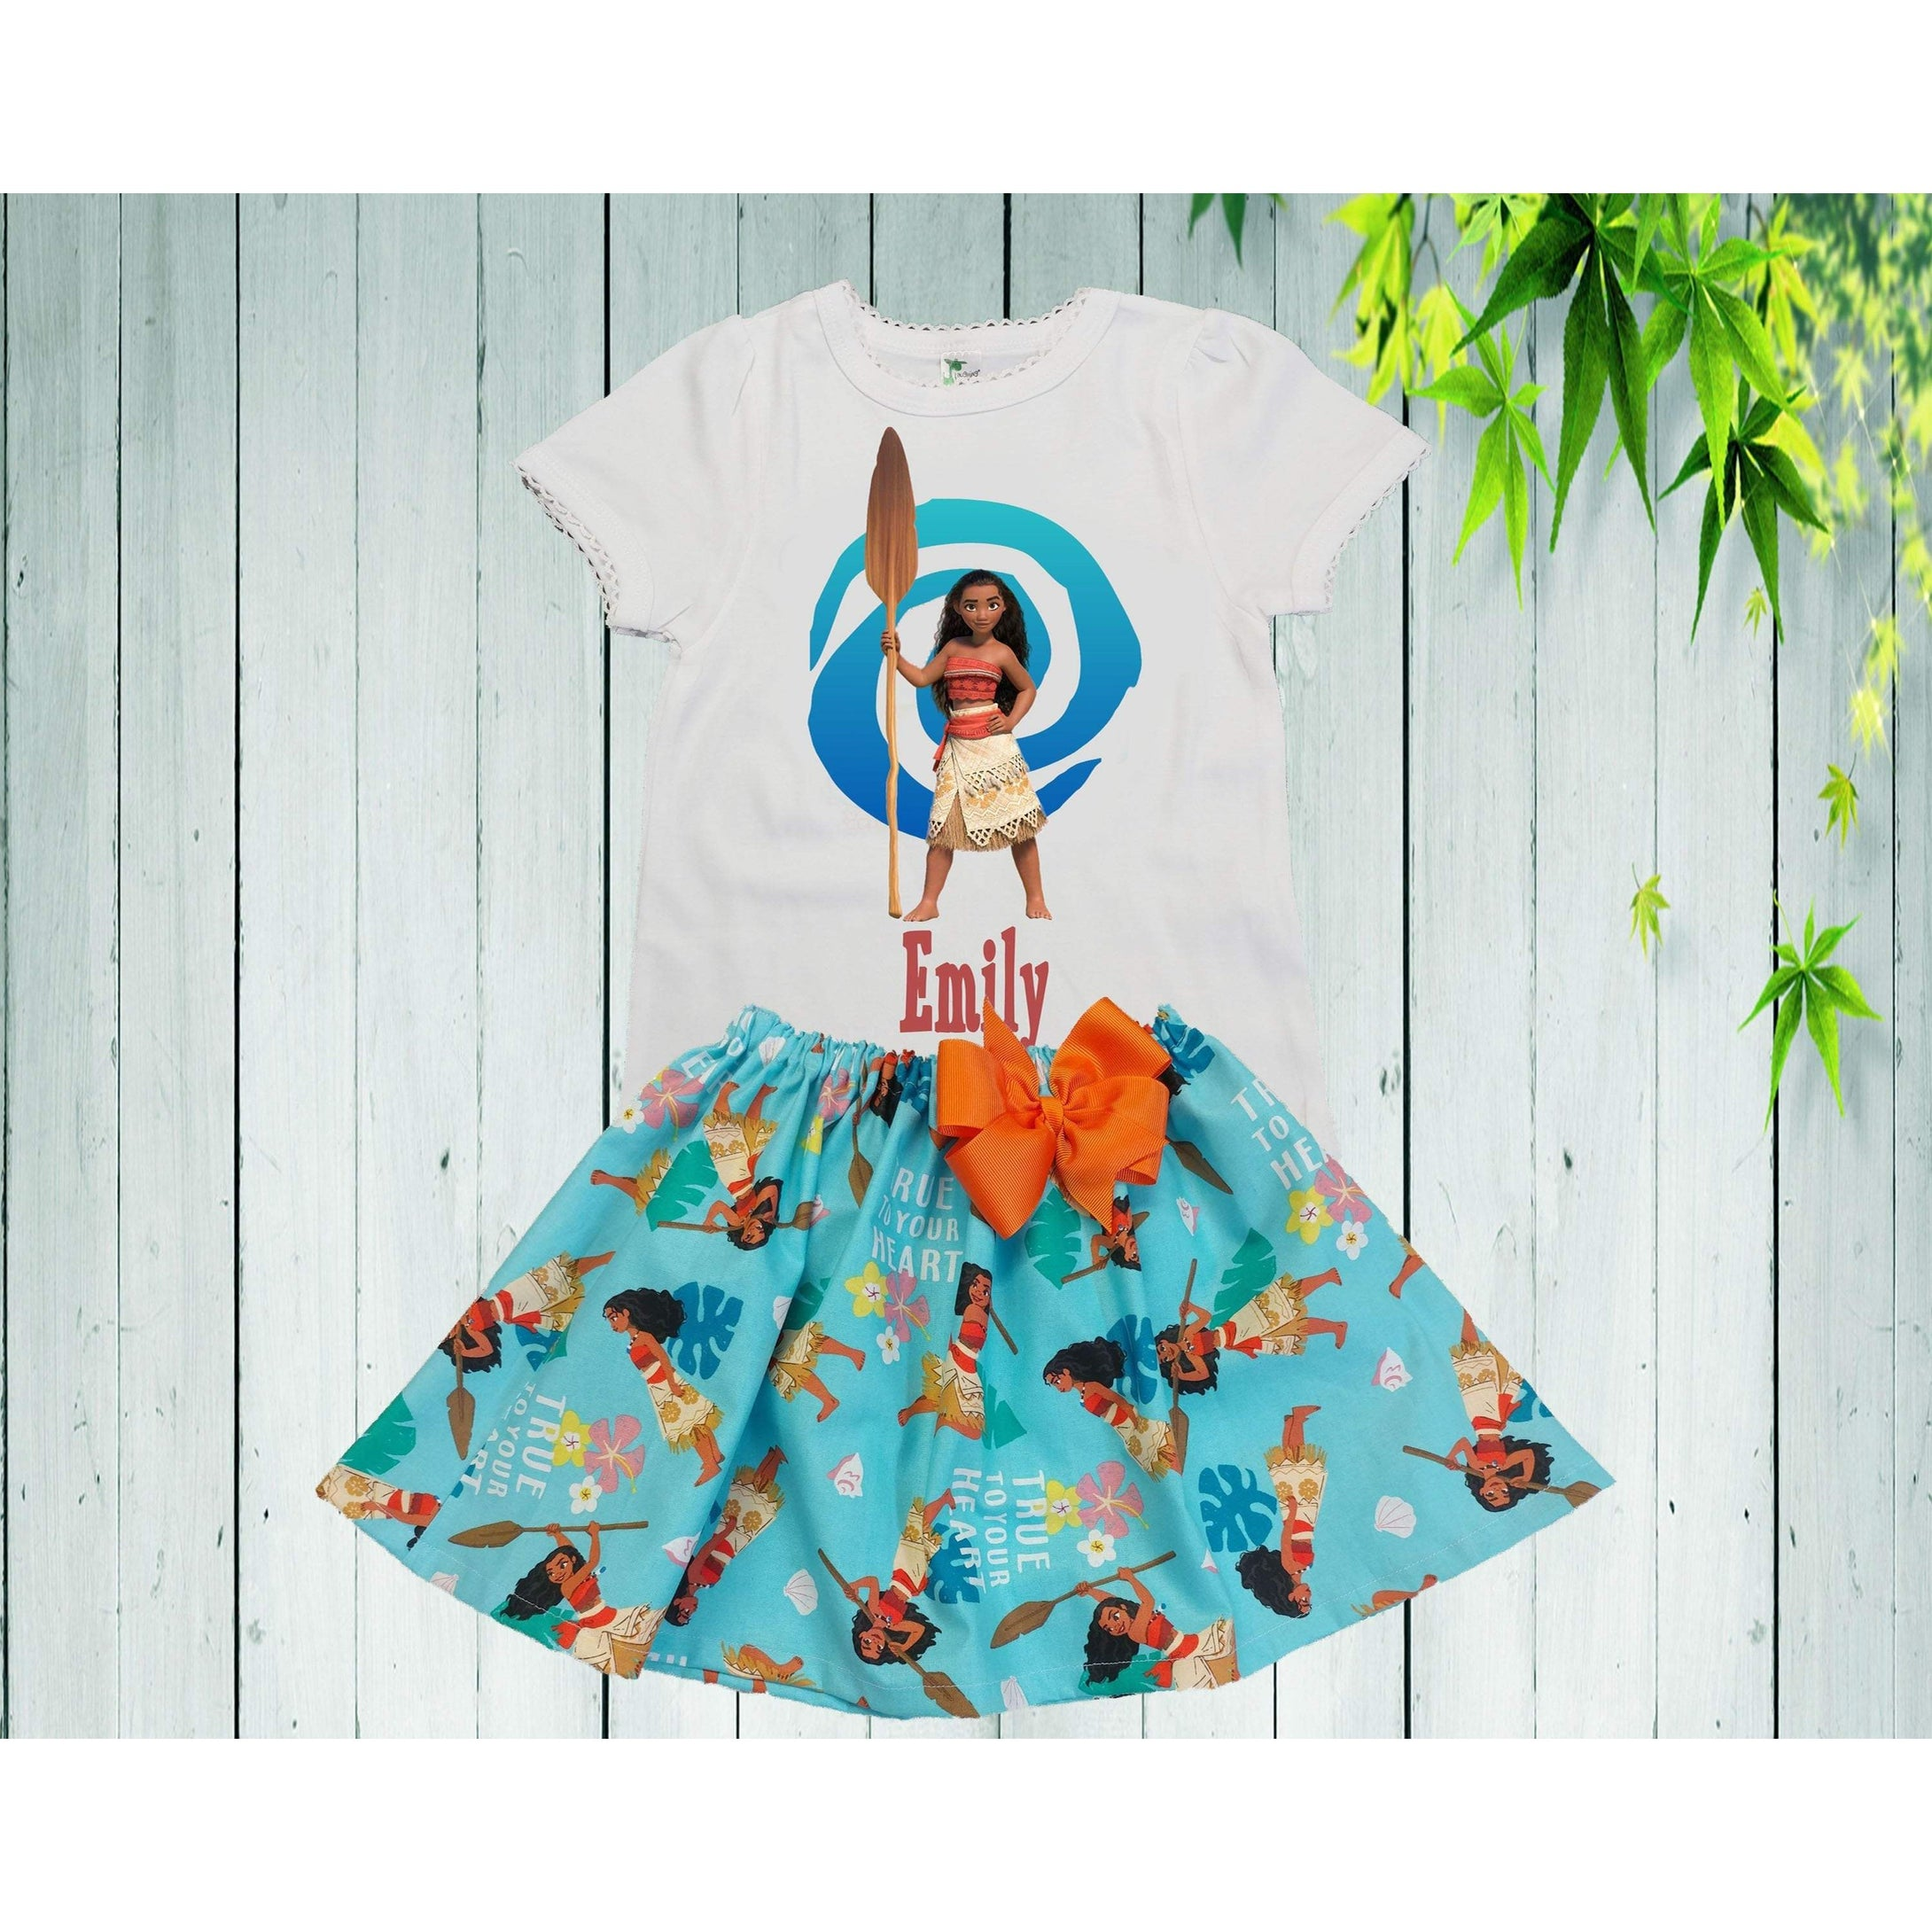 bele-kids-fashions,Girls Moana outfit Birthday dress toddler first birthday Princess Moana inspire outfit personalized outfit.